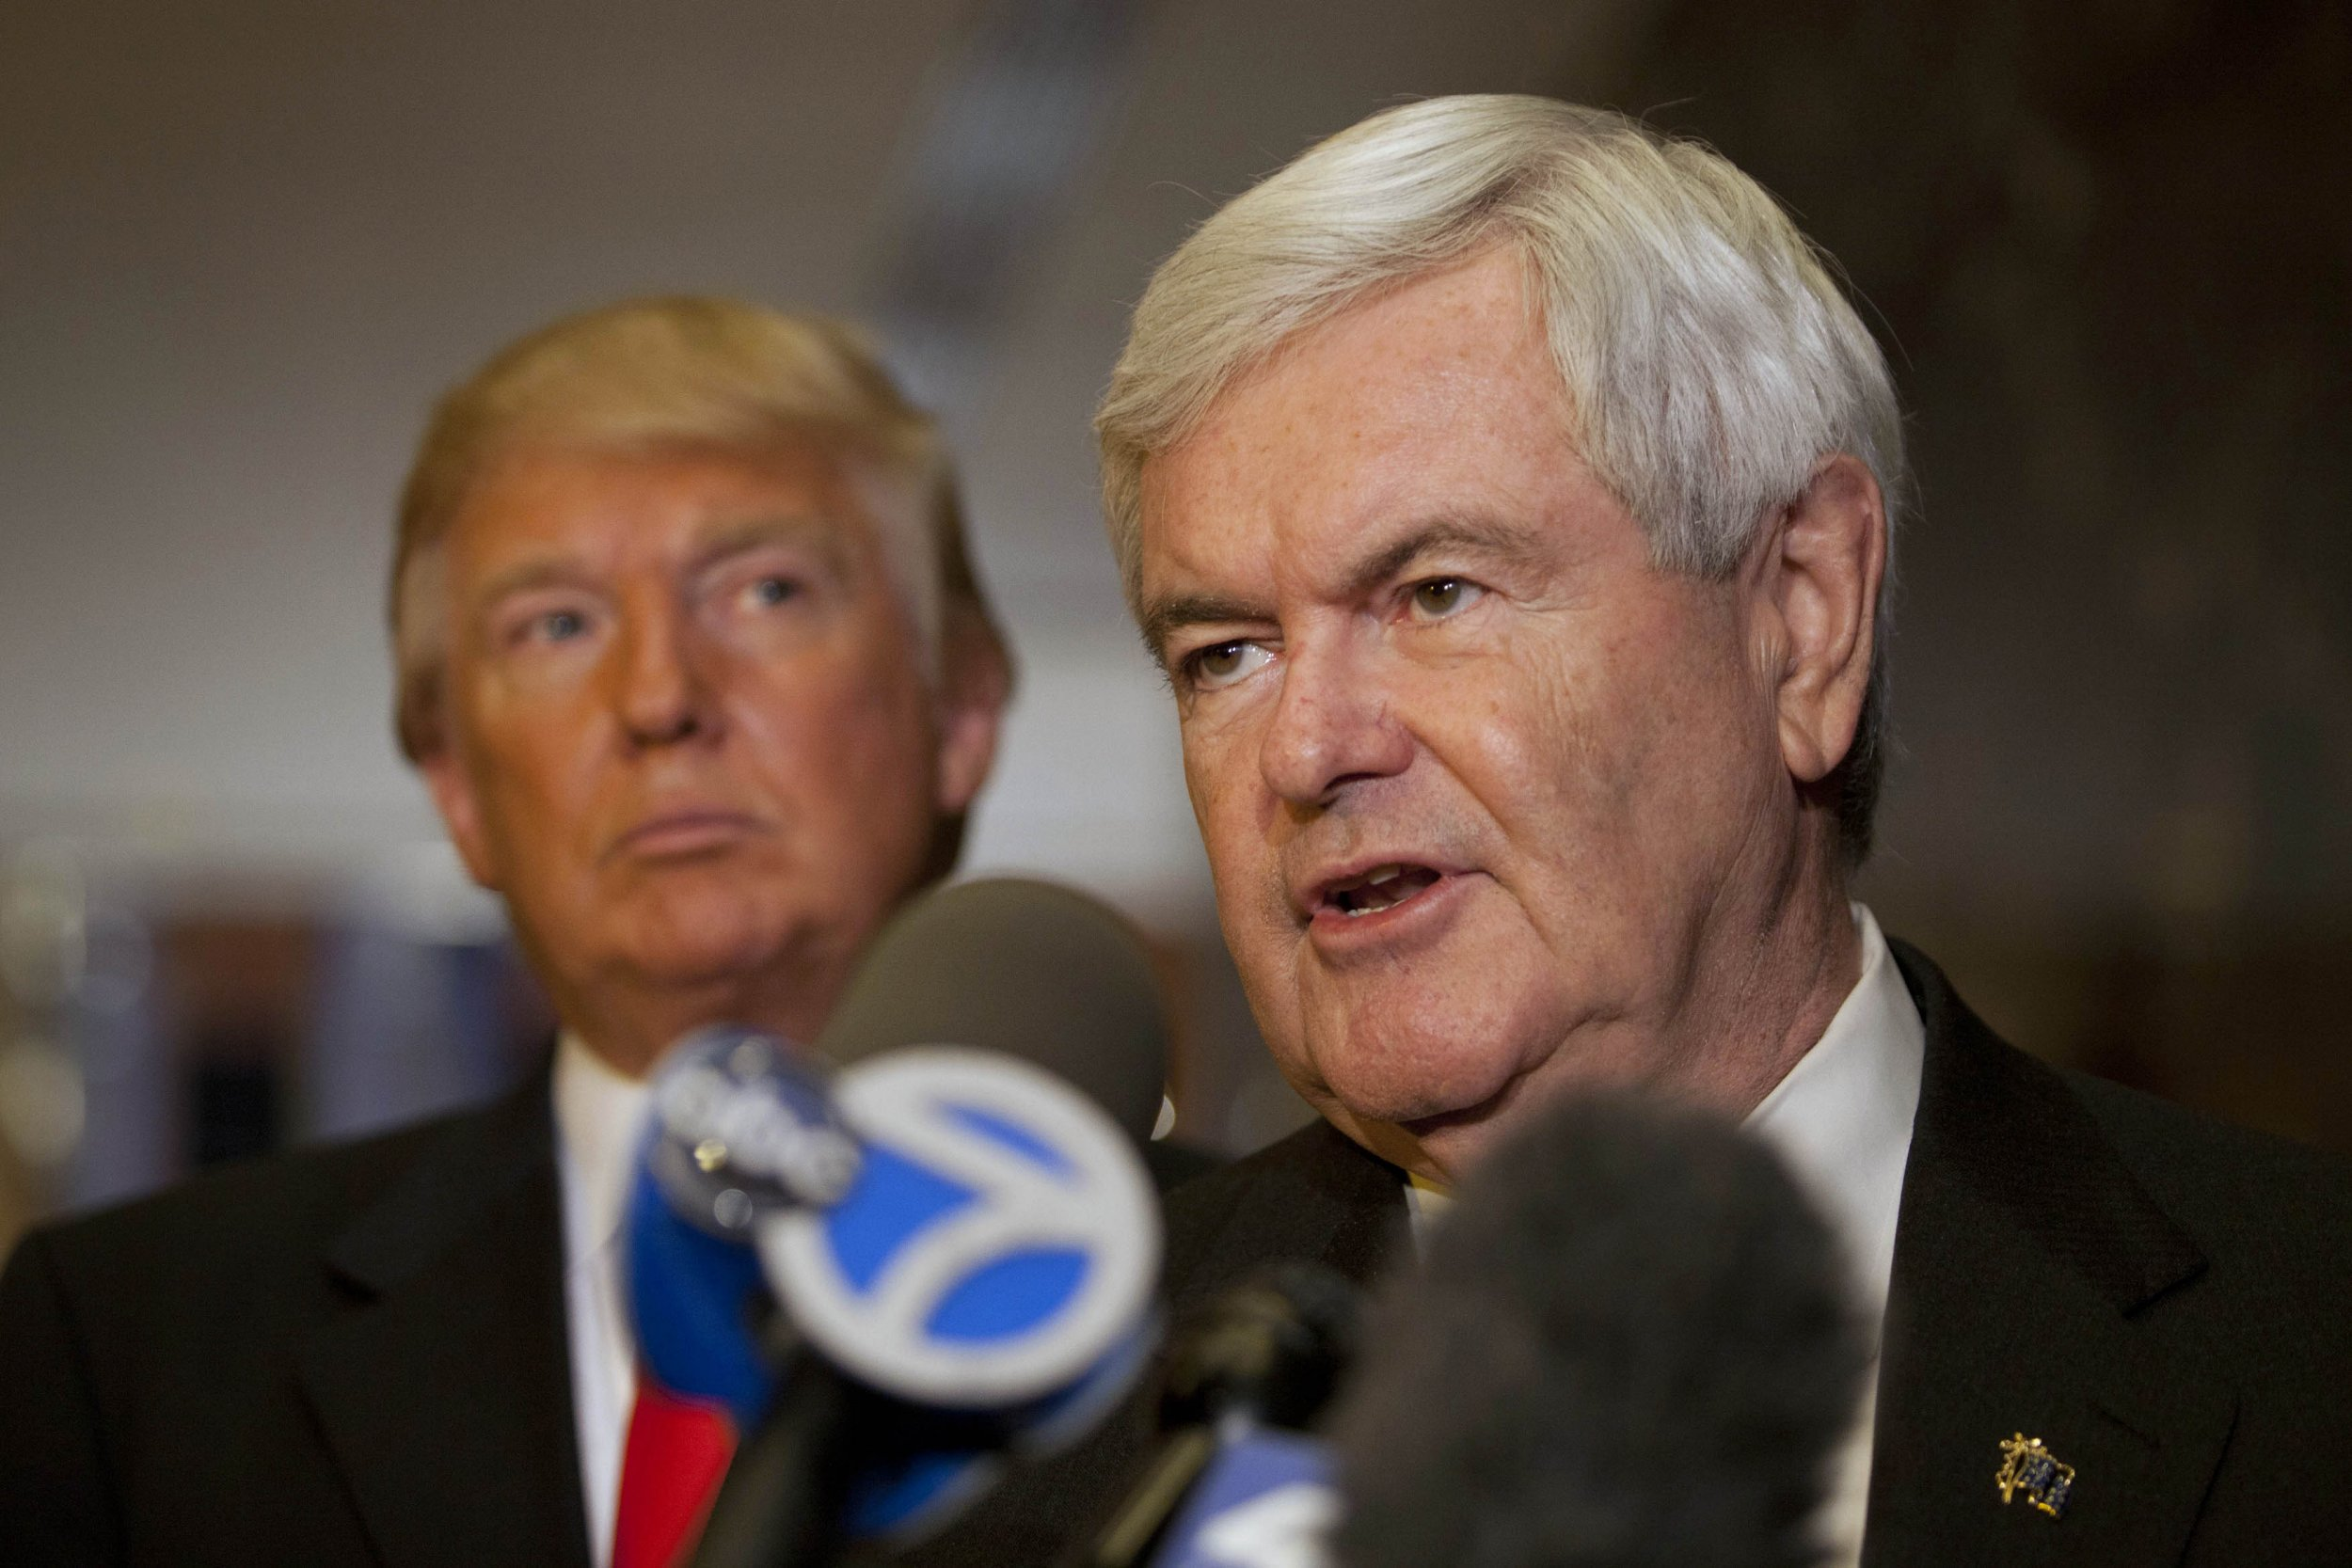 Newt Gingrich admits Trump probably lied about existence of Comey tapes